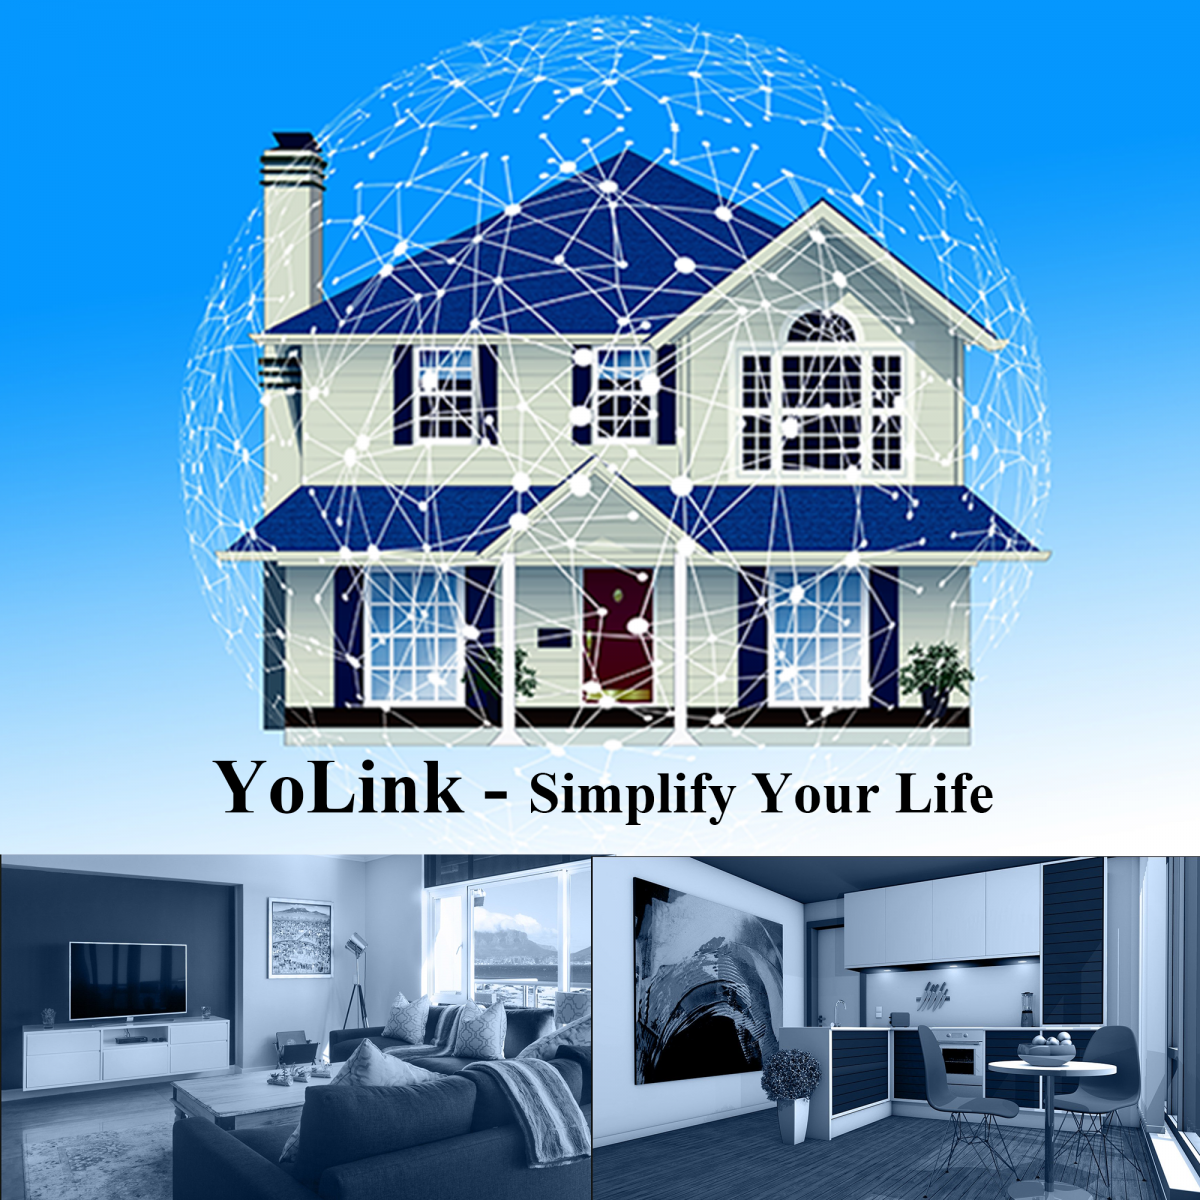 yolink-protocol-simplify-your-life